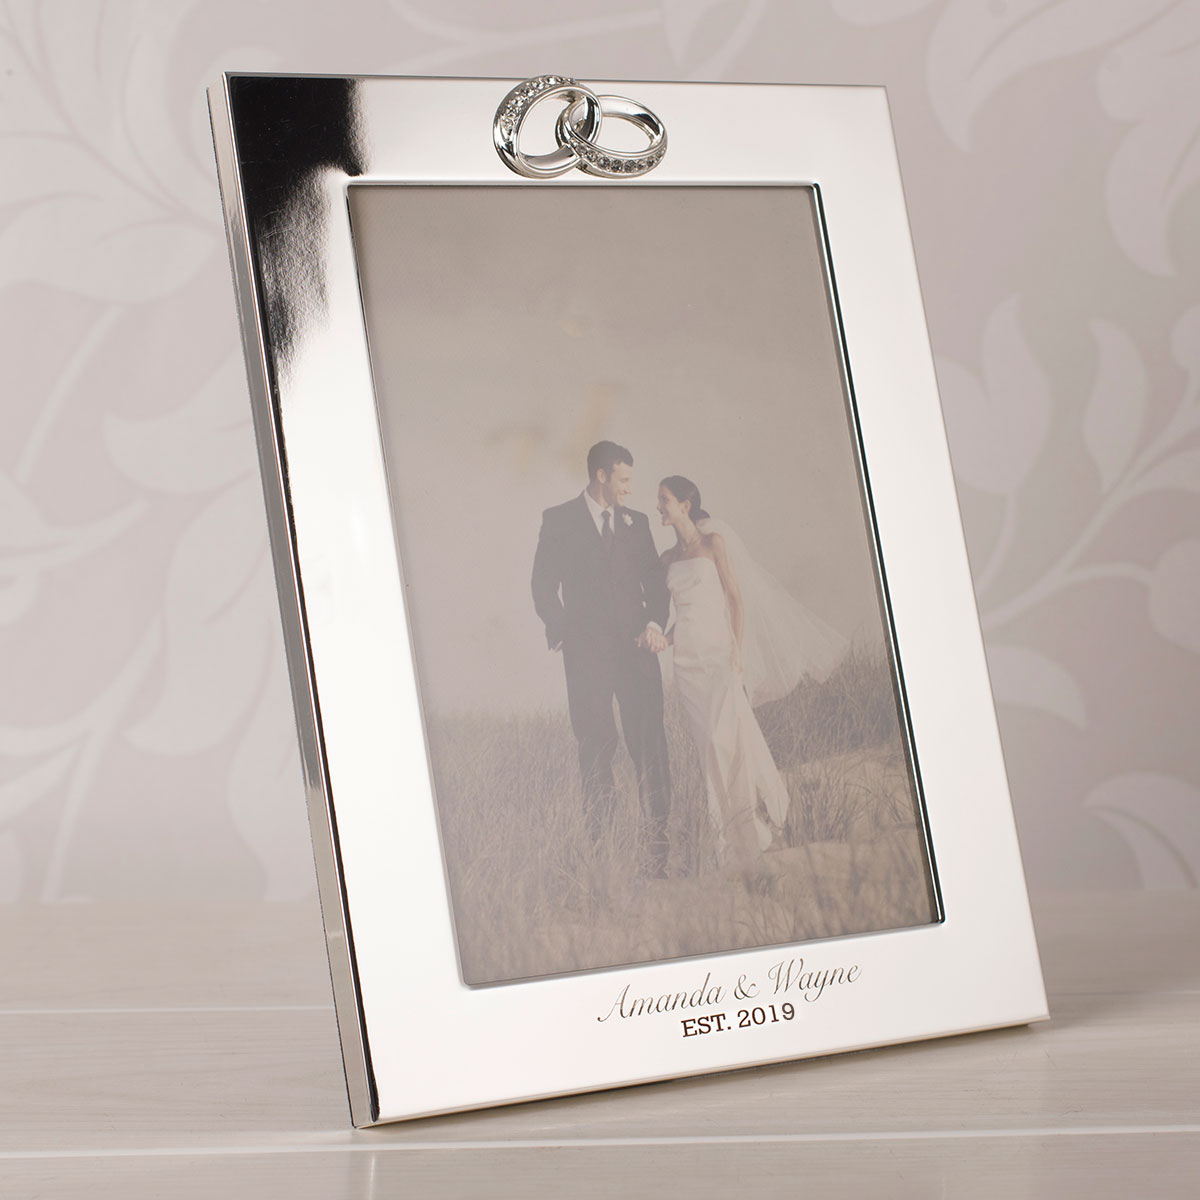 Engraved Silver Plated Wedding Photo Frame With Crystal